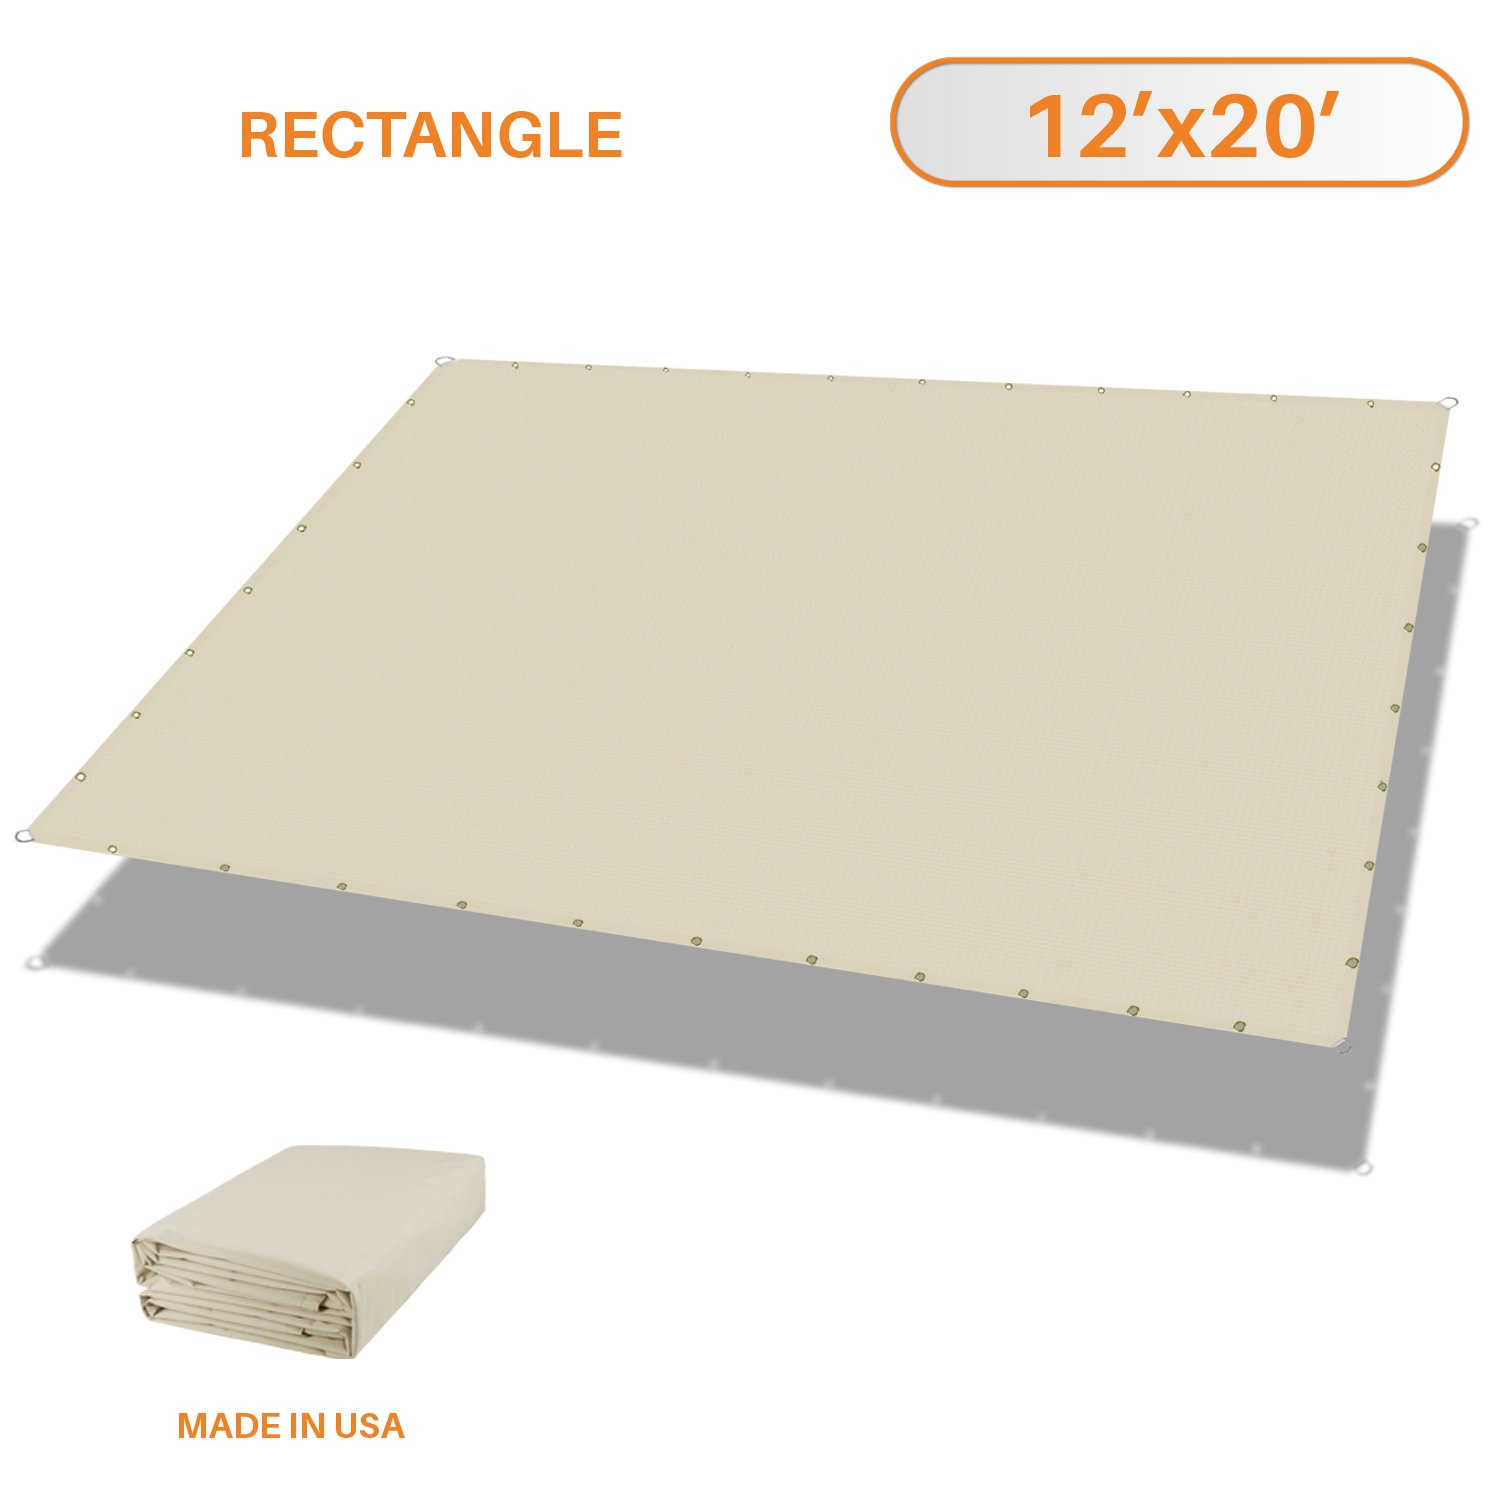 Sunshades Depot Tang 12'x20' Waterproof Rectangle Sun Shade Sail 220 GSM Beige Straight Edge Canopy with Grommet UV Block Shade Fabric Pergola Cover Awning Customize Available